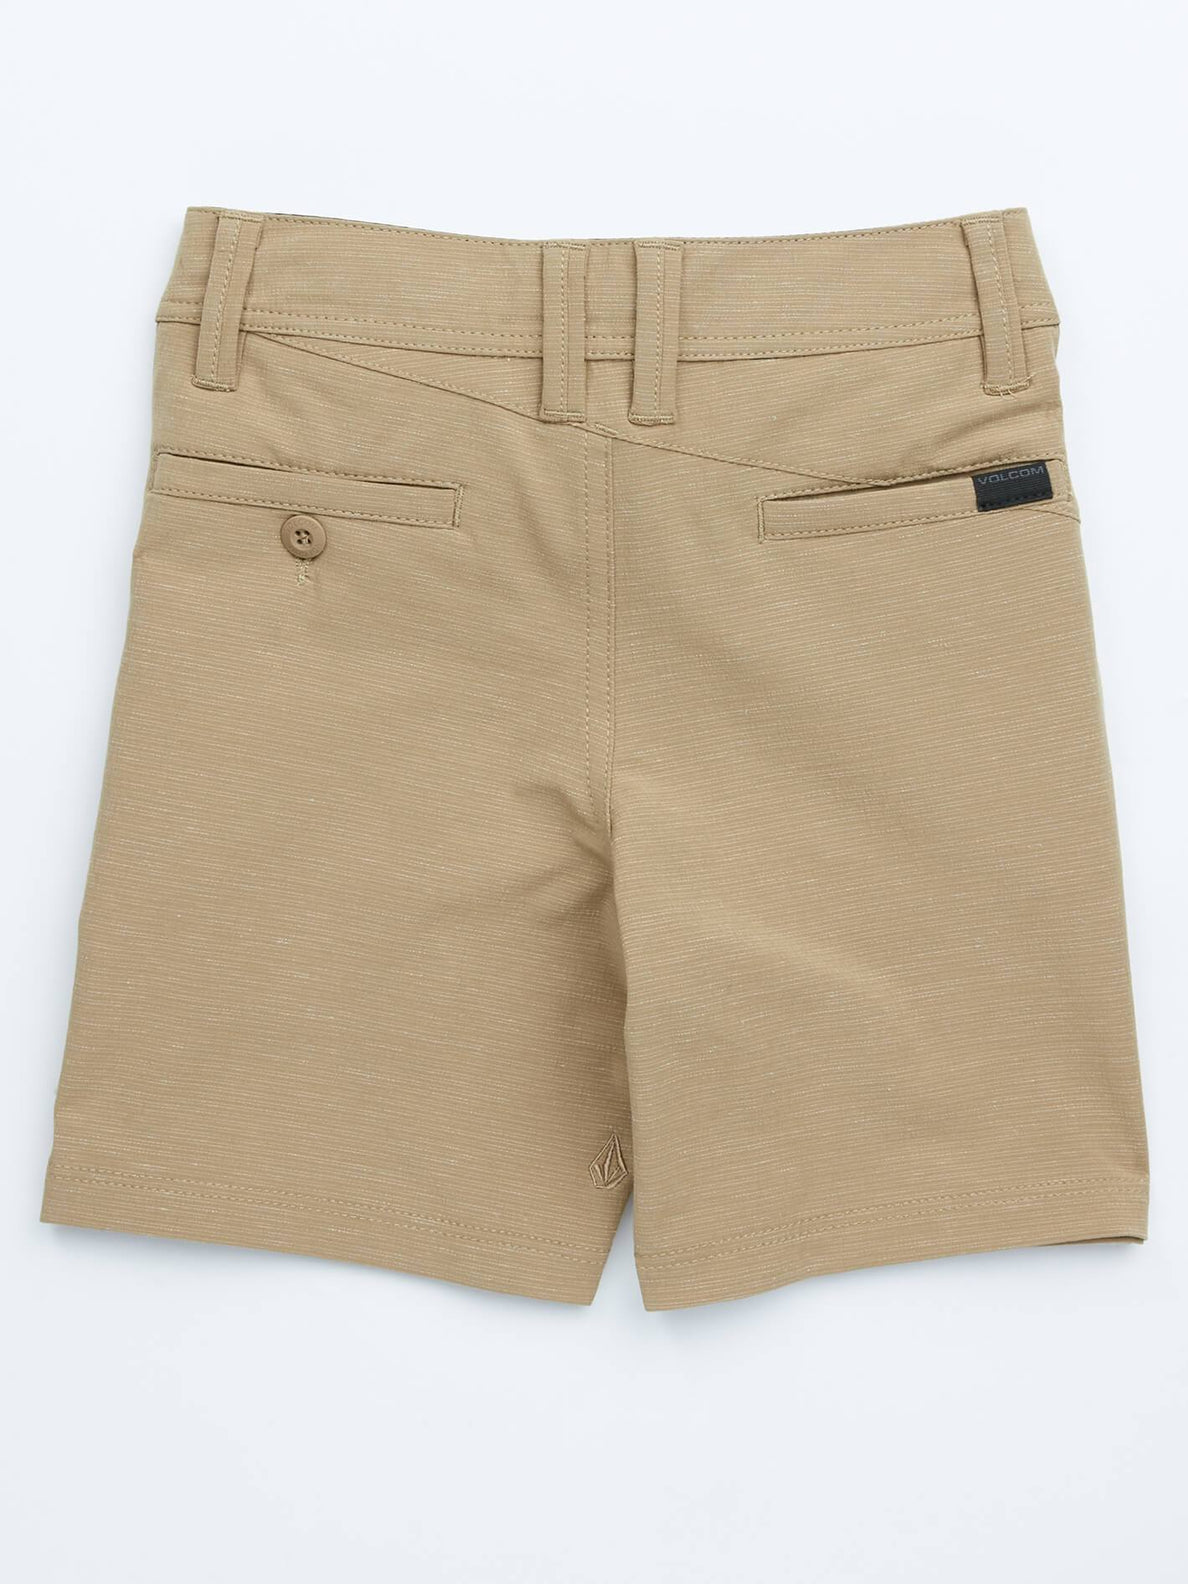 Little Boys Frickin Surf 'N Turf Slub Hybrid Shorts In Sand Brown, Back View